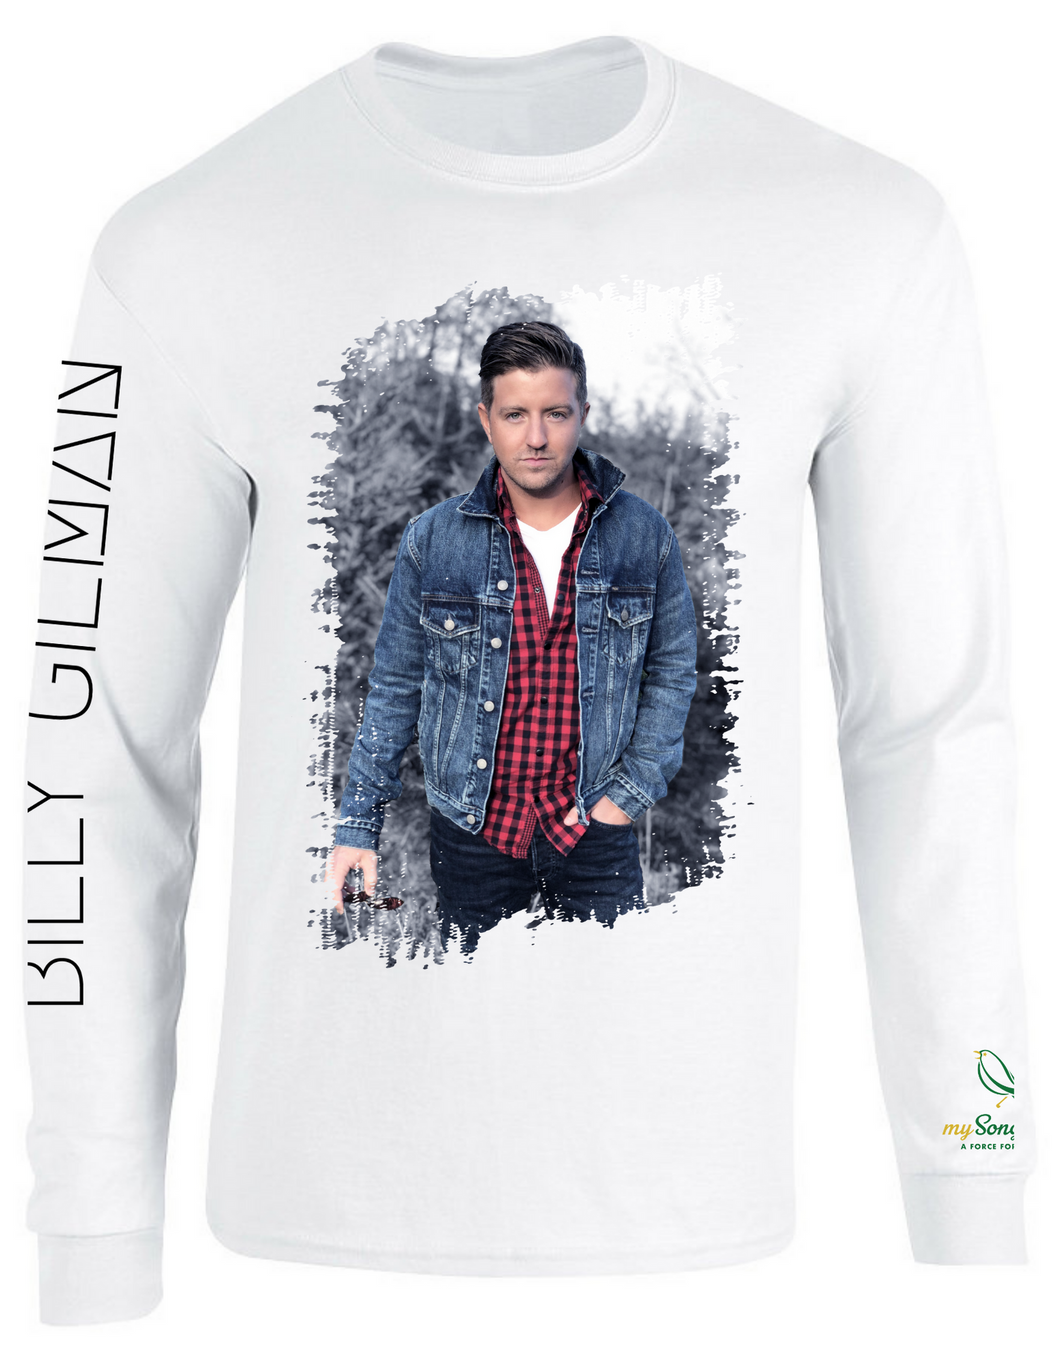 Billy Gilman x mySongbird Long Sleeve T-Shirt